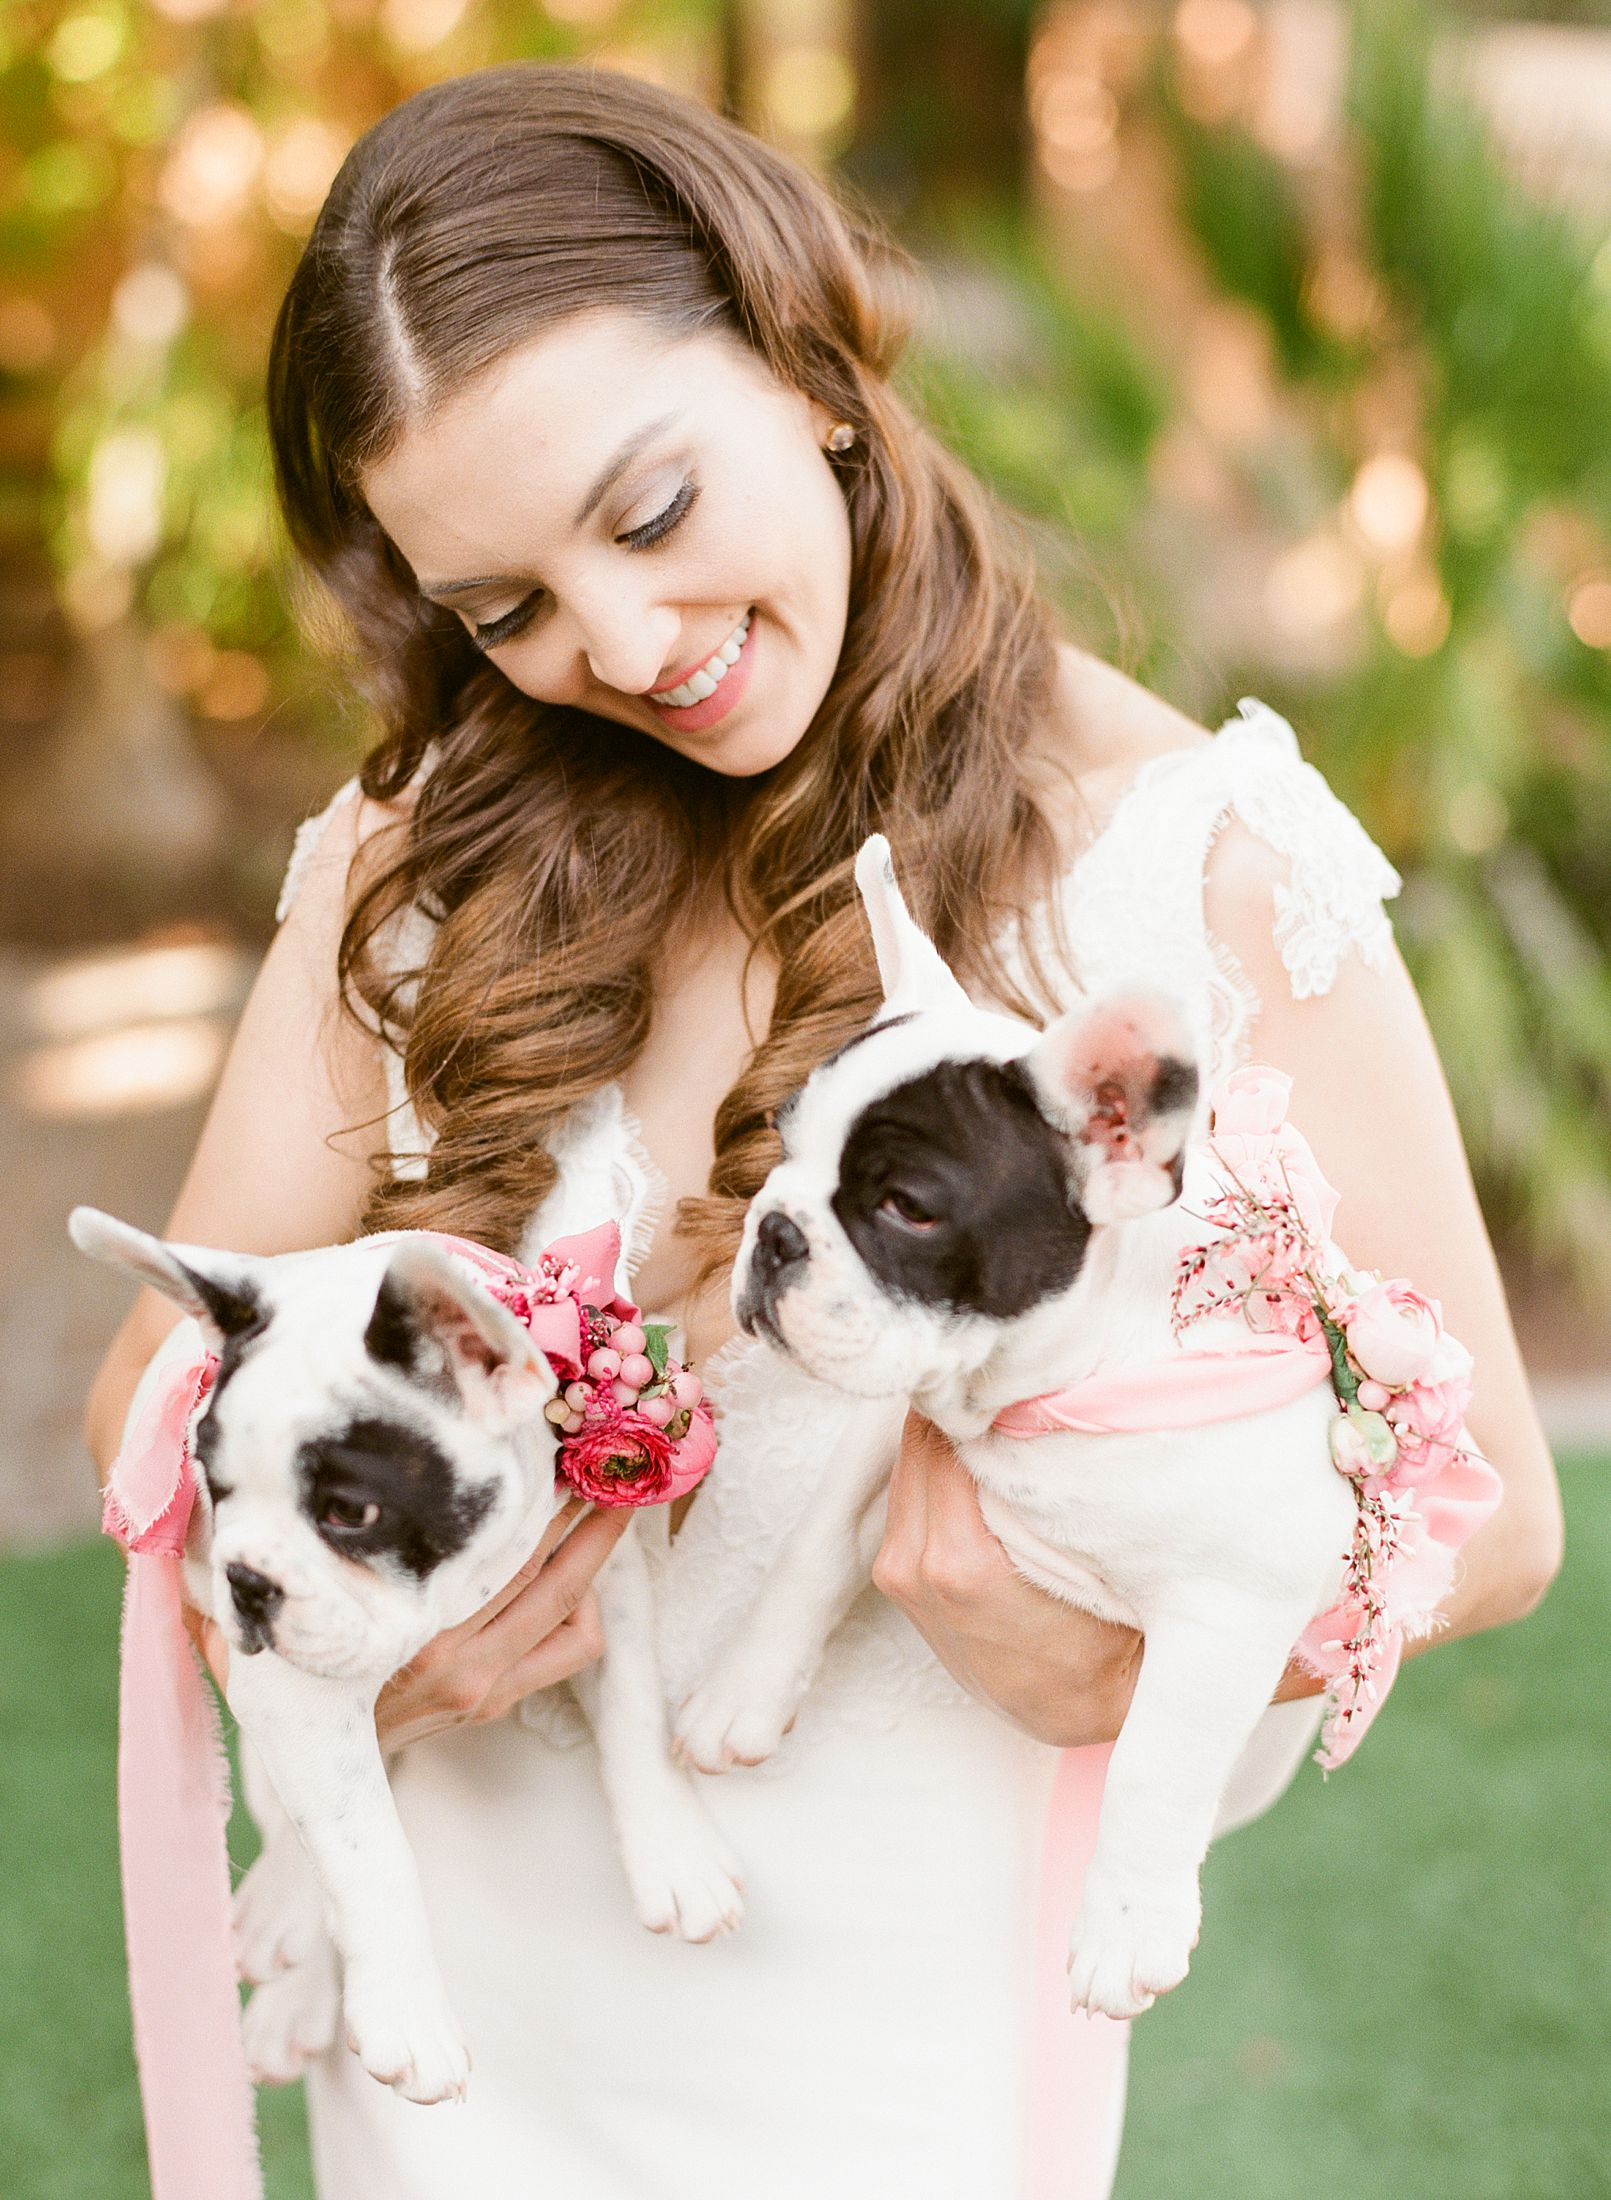 Pink Ombre Wedding Inspiration on Style Me Pretty - Royal Palms Wedding - Scottsdale Wedding - Ashley Baumgartner - Bloom and Blueprint - Wedding Puppies - Bulldog Puppies_0017.jpg